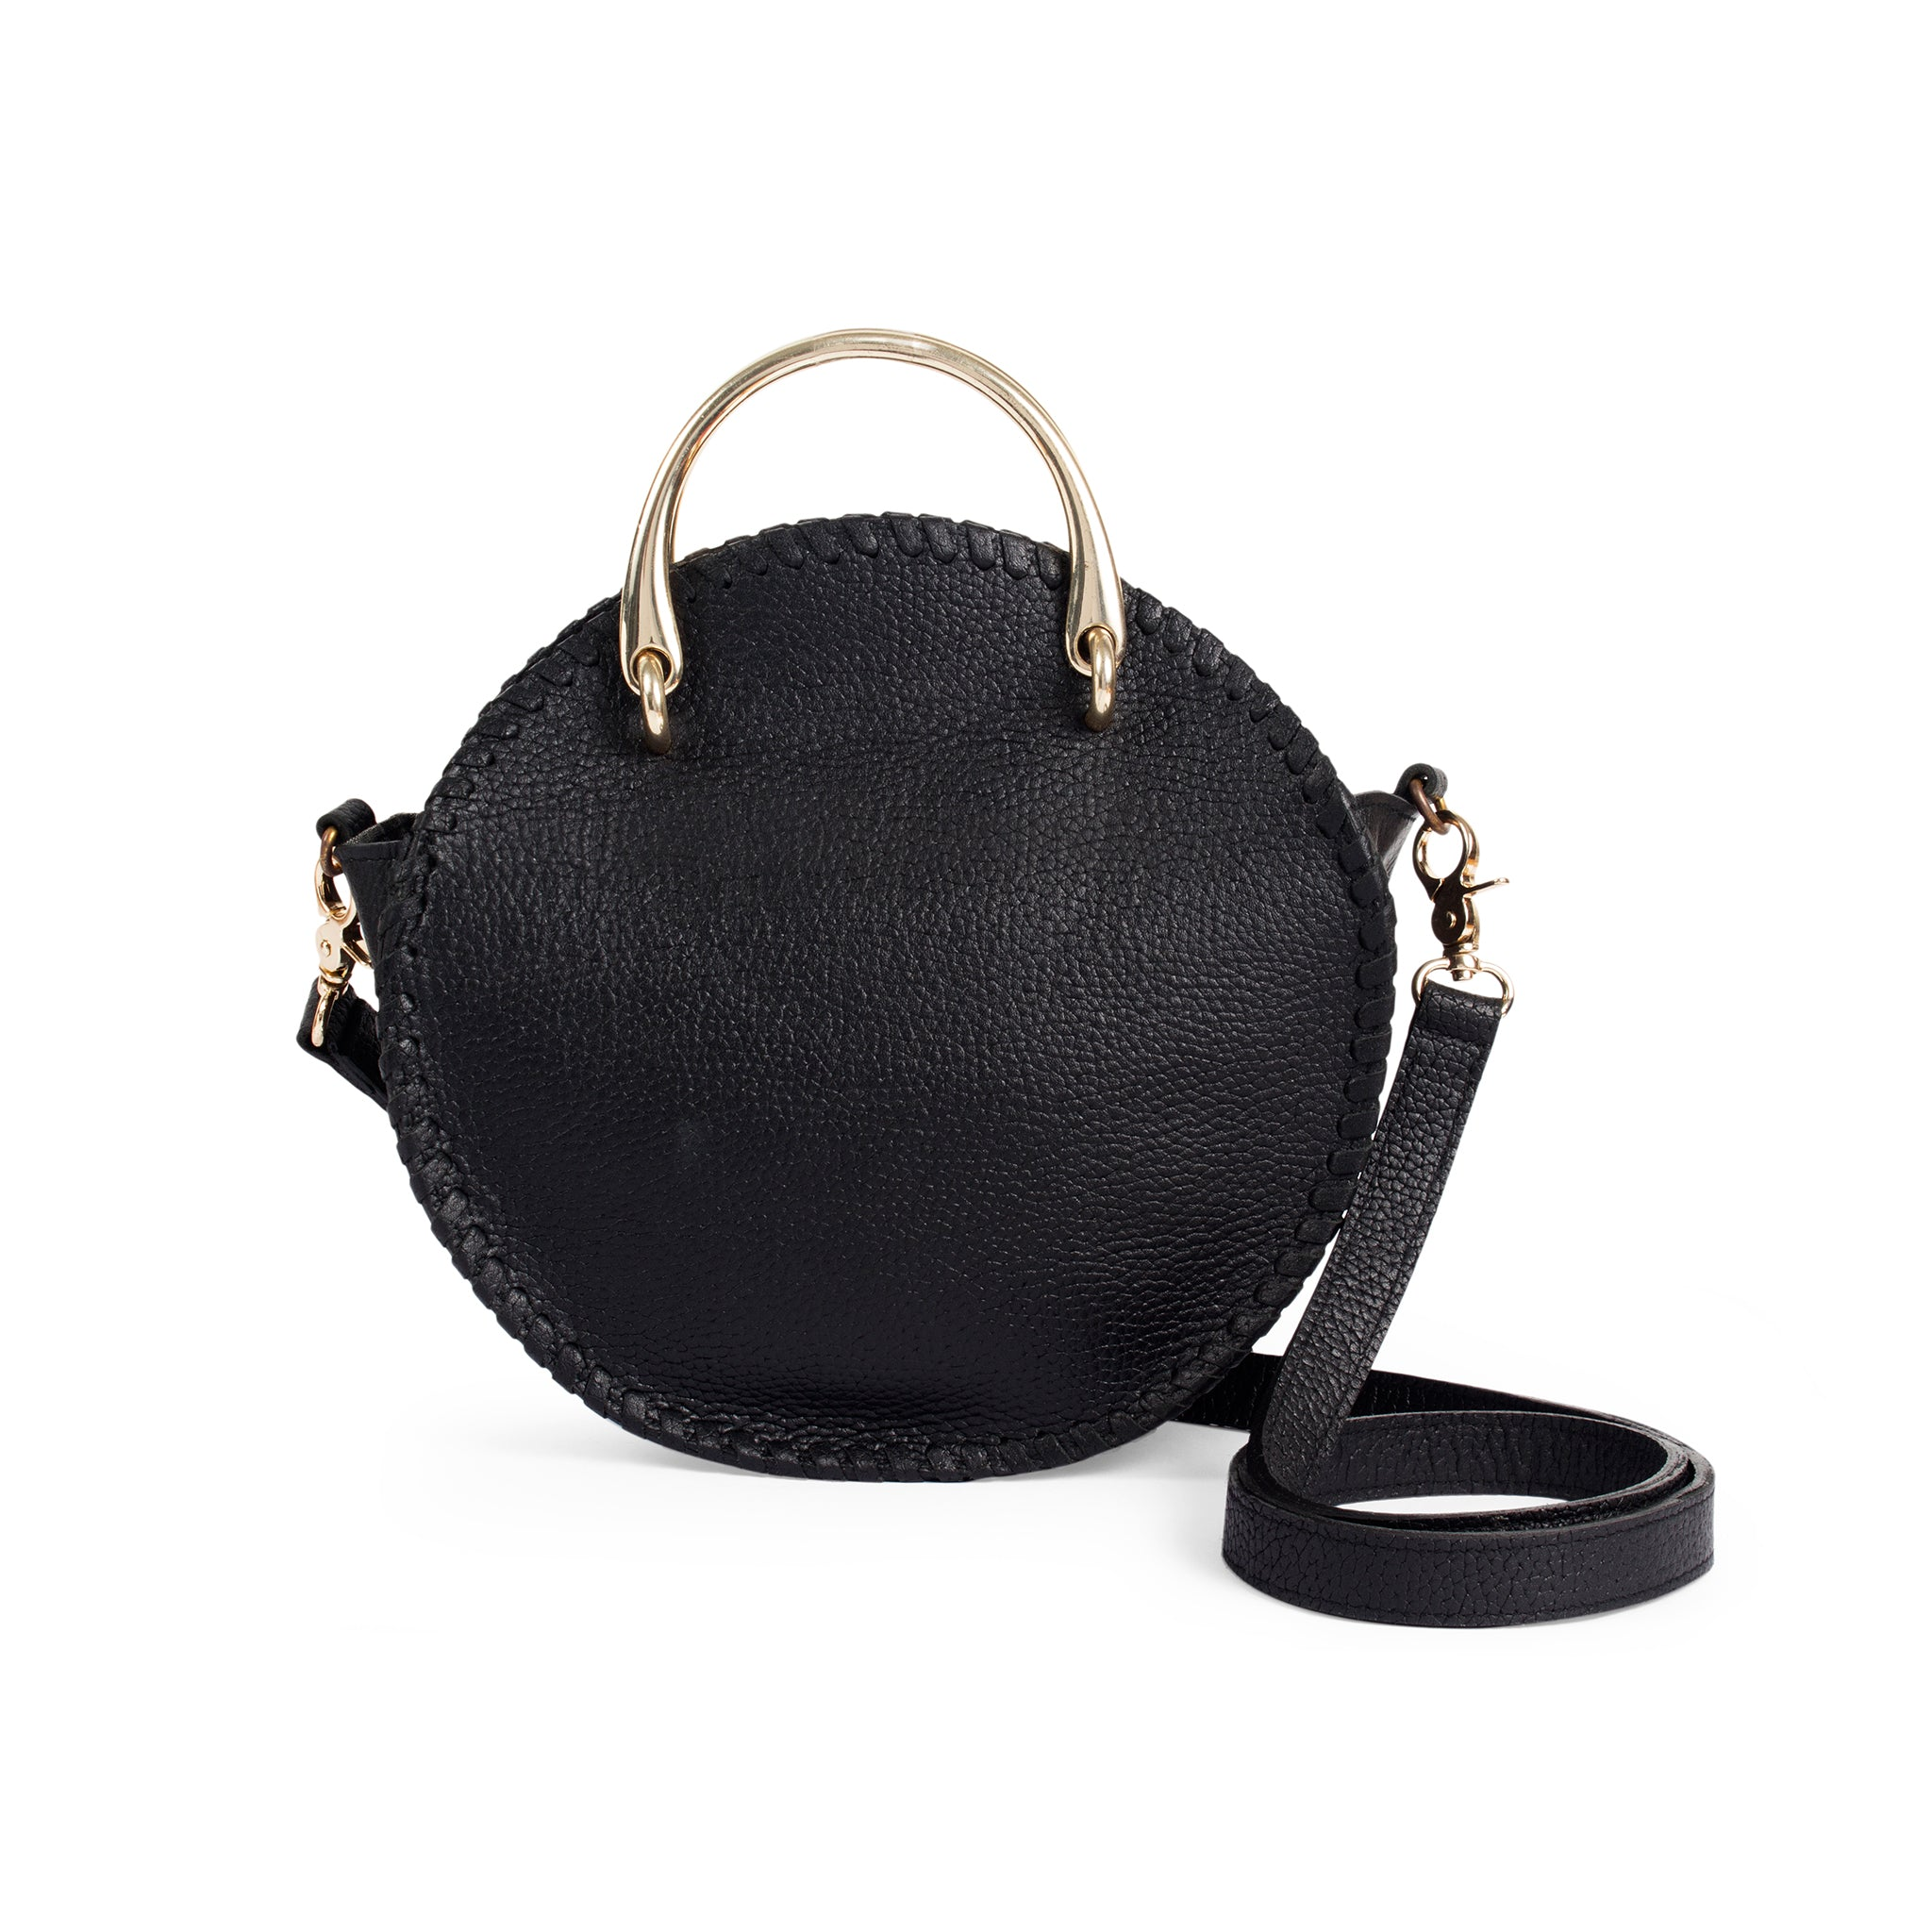 bags and purses; leather circle bag; circle crossbody bag; chloe circle bag; round leather handbag; black circle leather bag; black round leather bag; black round bag; small round double handle shoulder bag; round shoulder bag; black shoulder bag; circle shoulder bag; leather round crossbody bag; leather black round shoulder bag; shoulder bags for women; crossbody bags for women; affordable round shoulder bags; affordable circle bags; black affordable round bag; chloe round small double handle bag